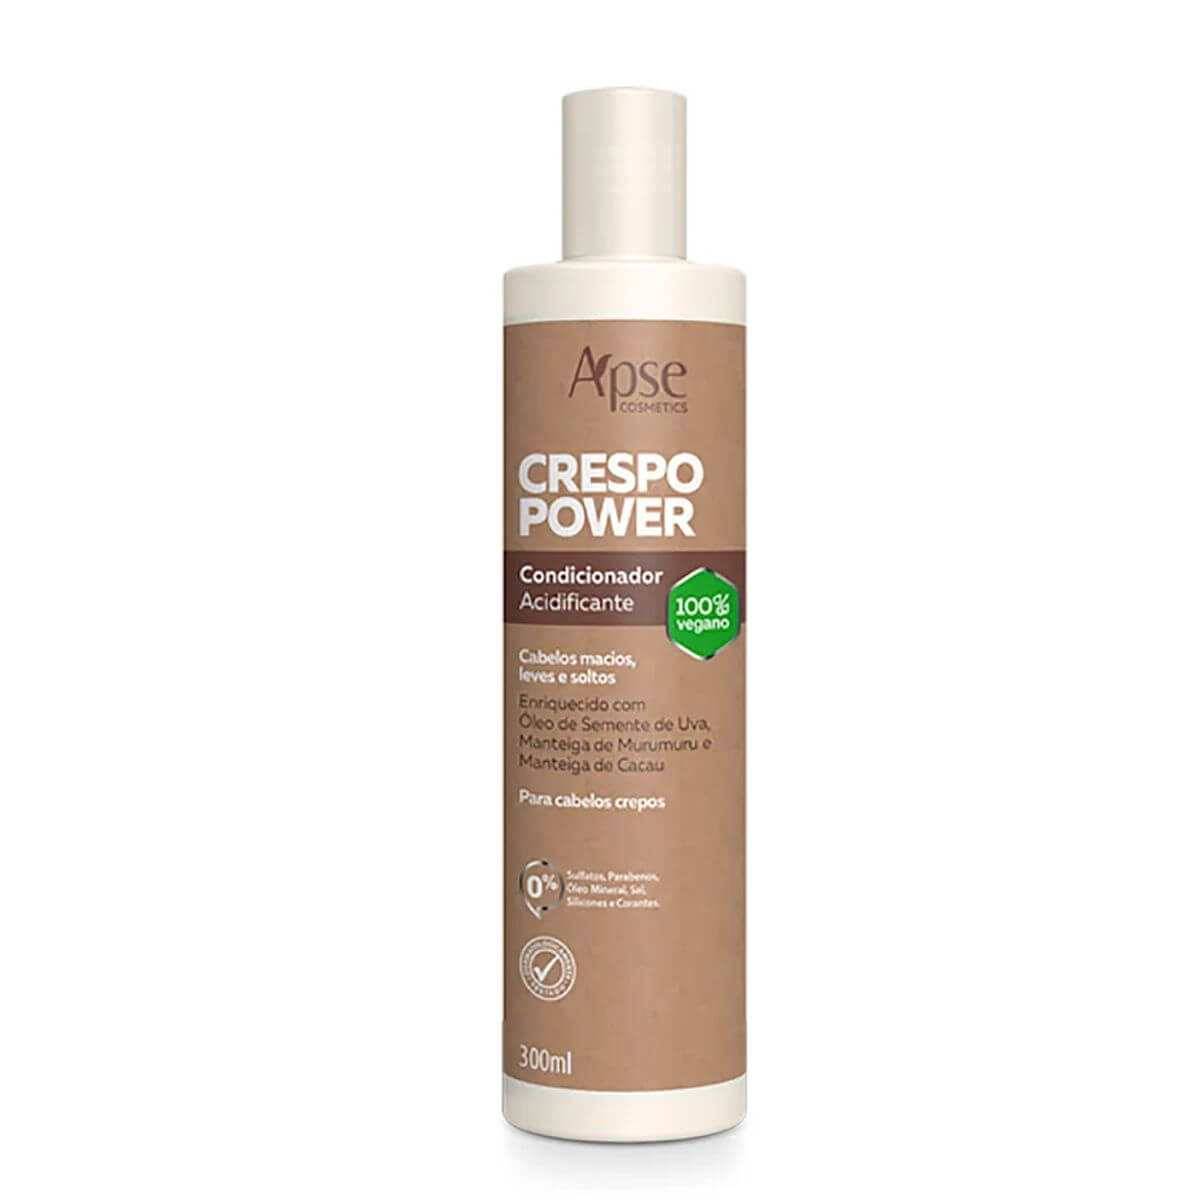 Apse - Condicionador Acidificante - Crespo Power - 300ml